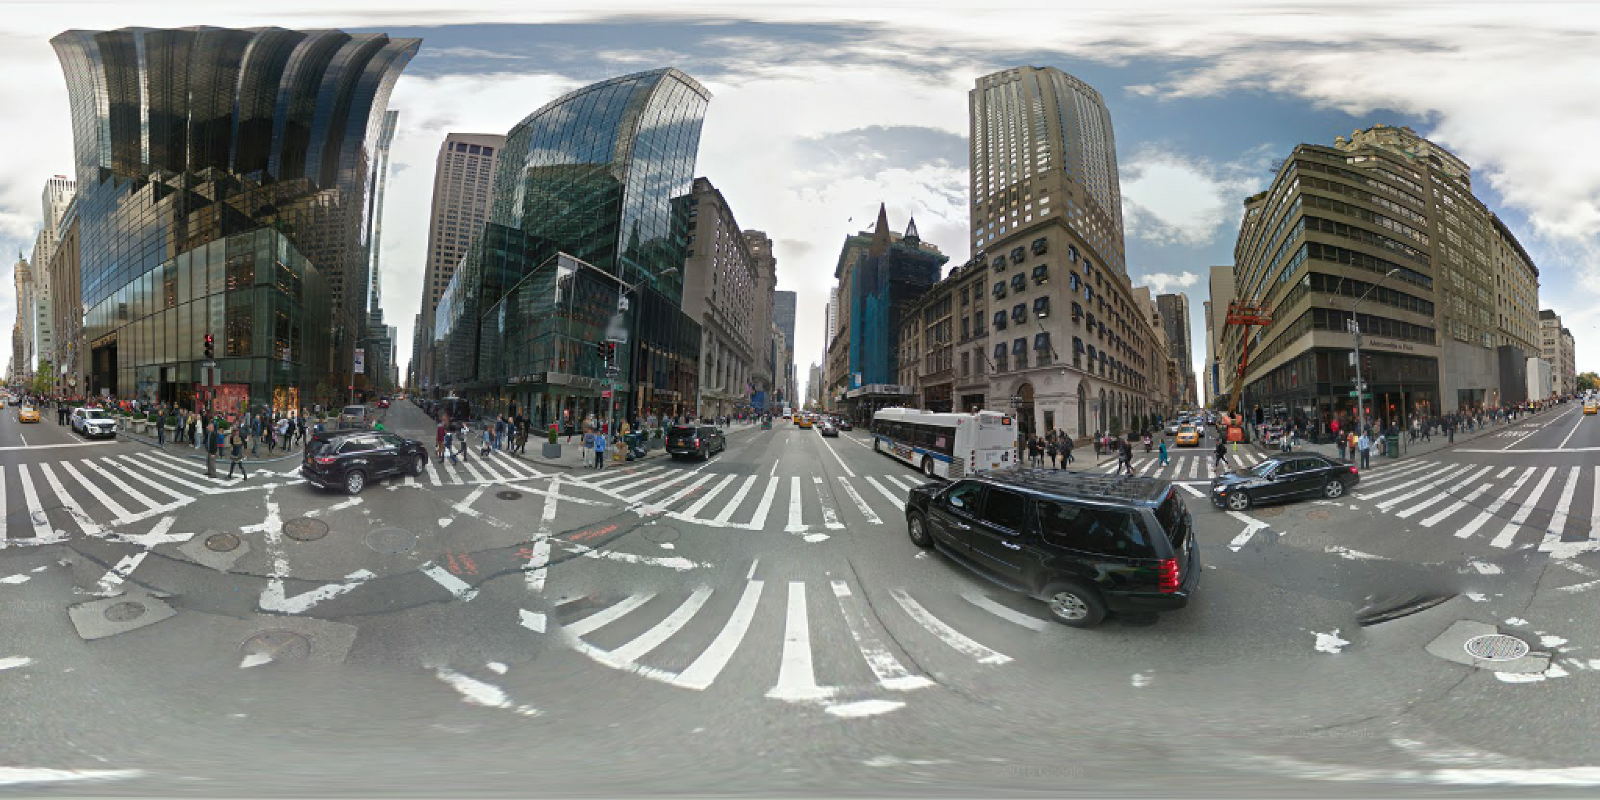 New | Creating point clouds with Google Street View